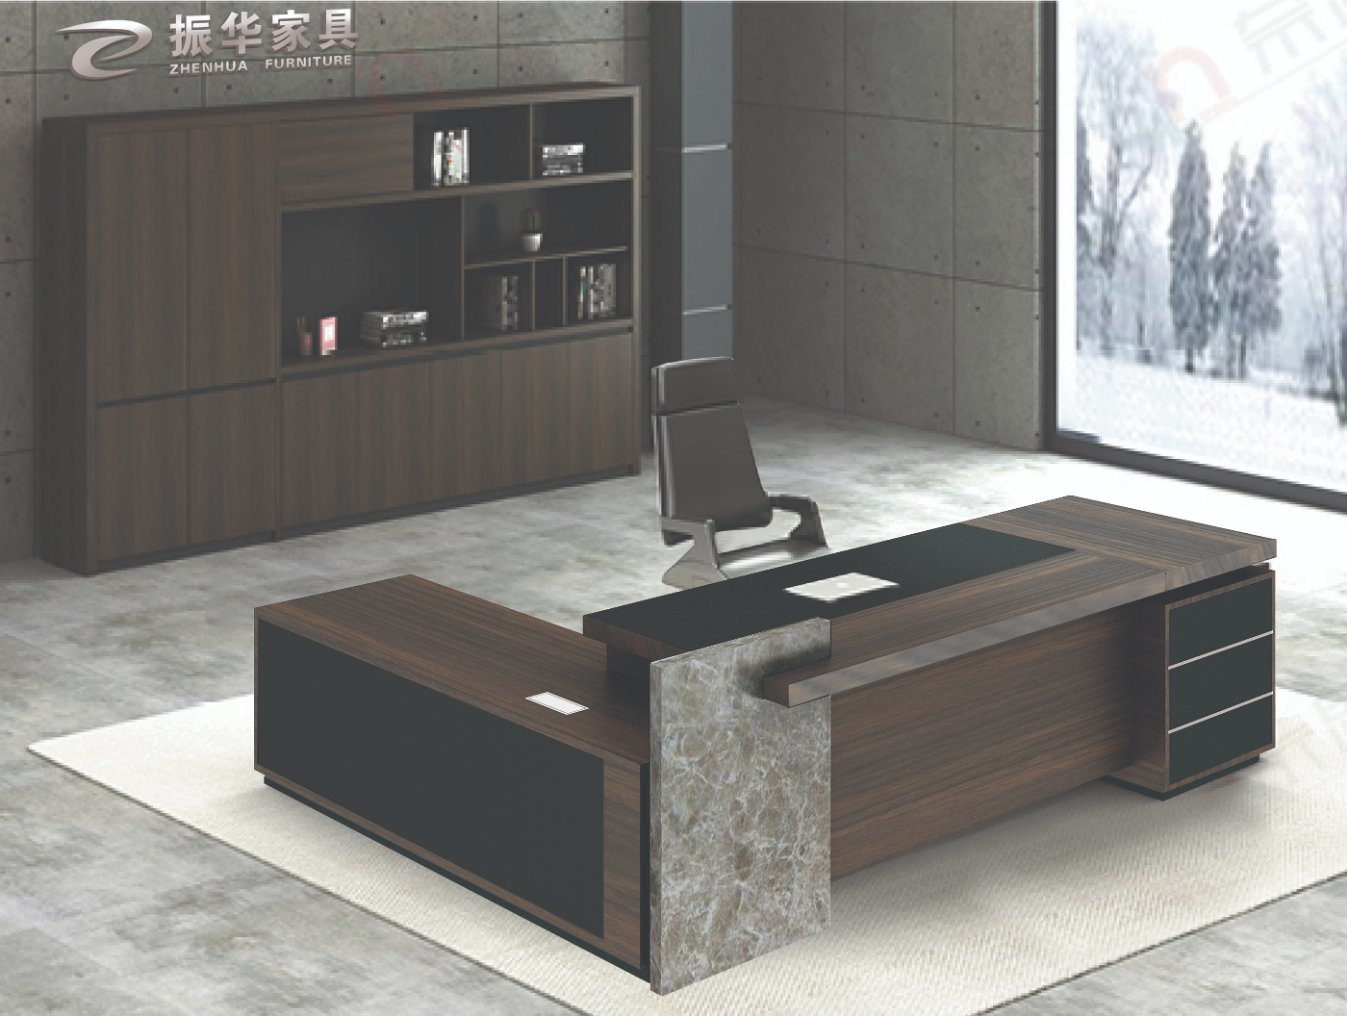 China New Design Professional Office Furniture European Style Wooden Office Furniture Executive Office Desk China Office Table Office Furniture